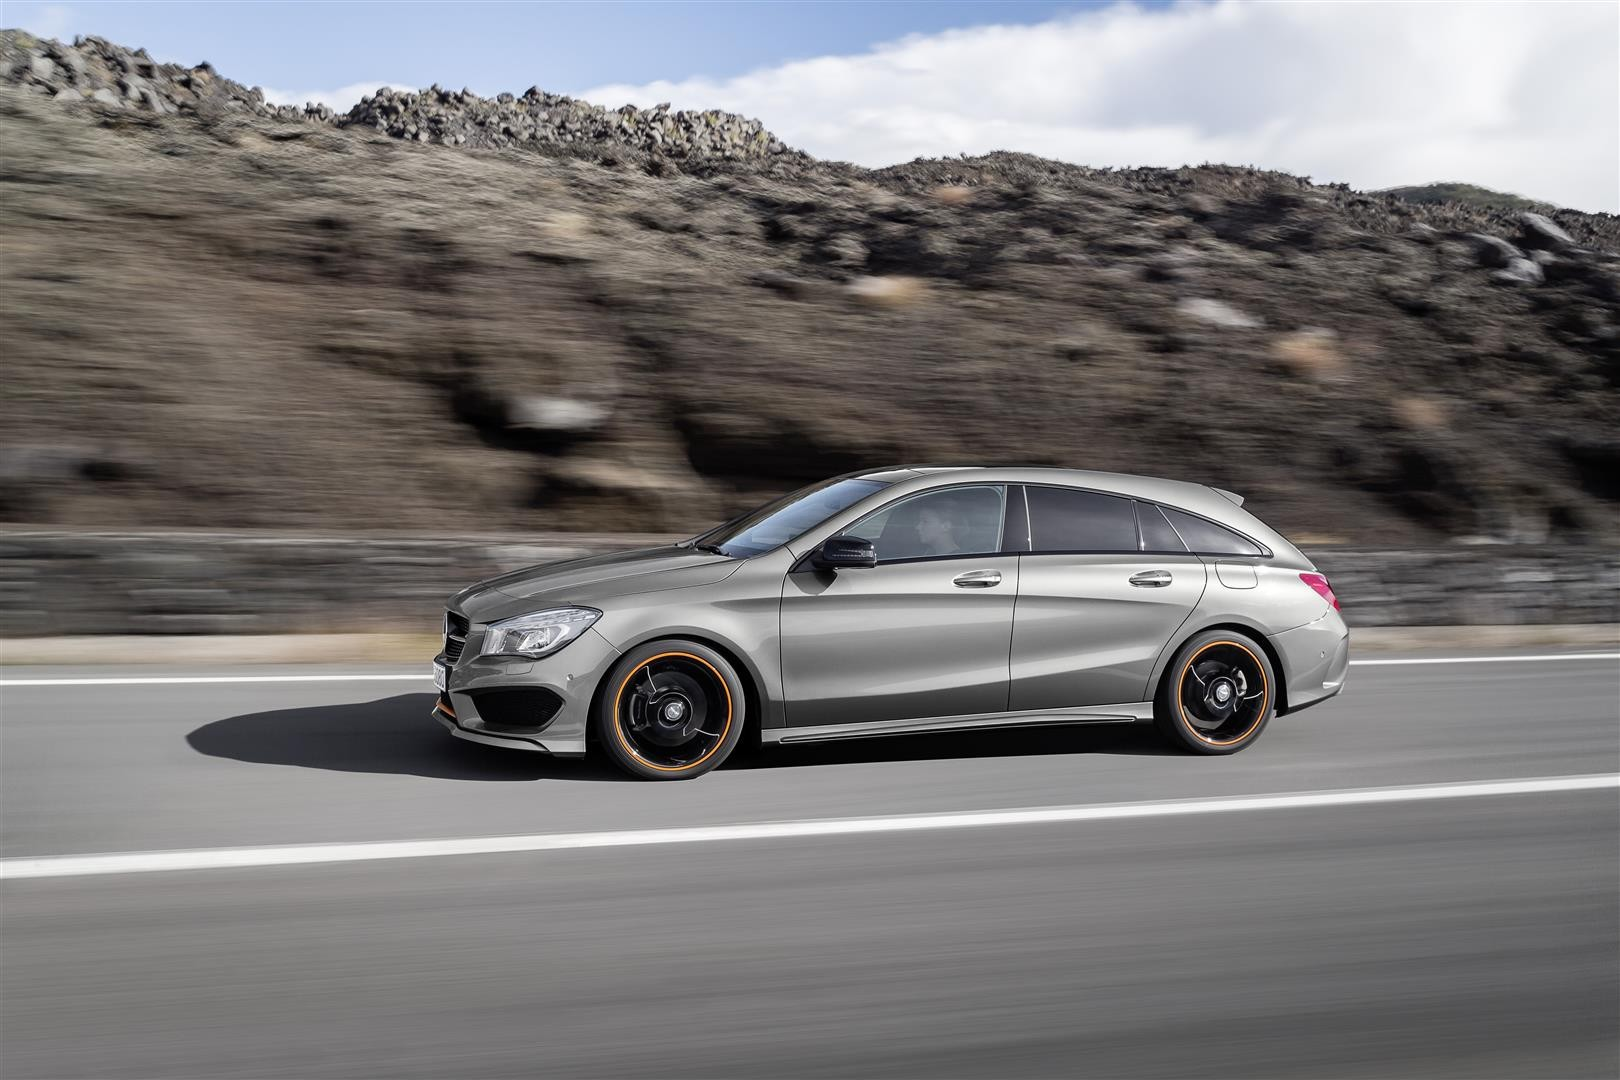 La nouvelle Mercedes-Benz CLA Shooting Brake